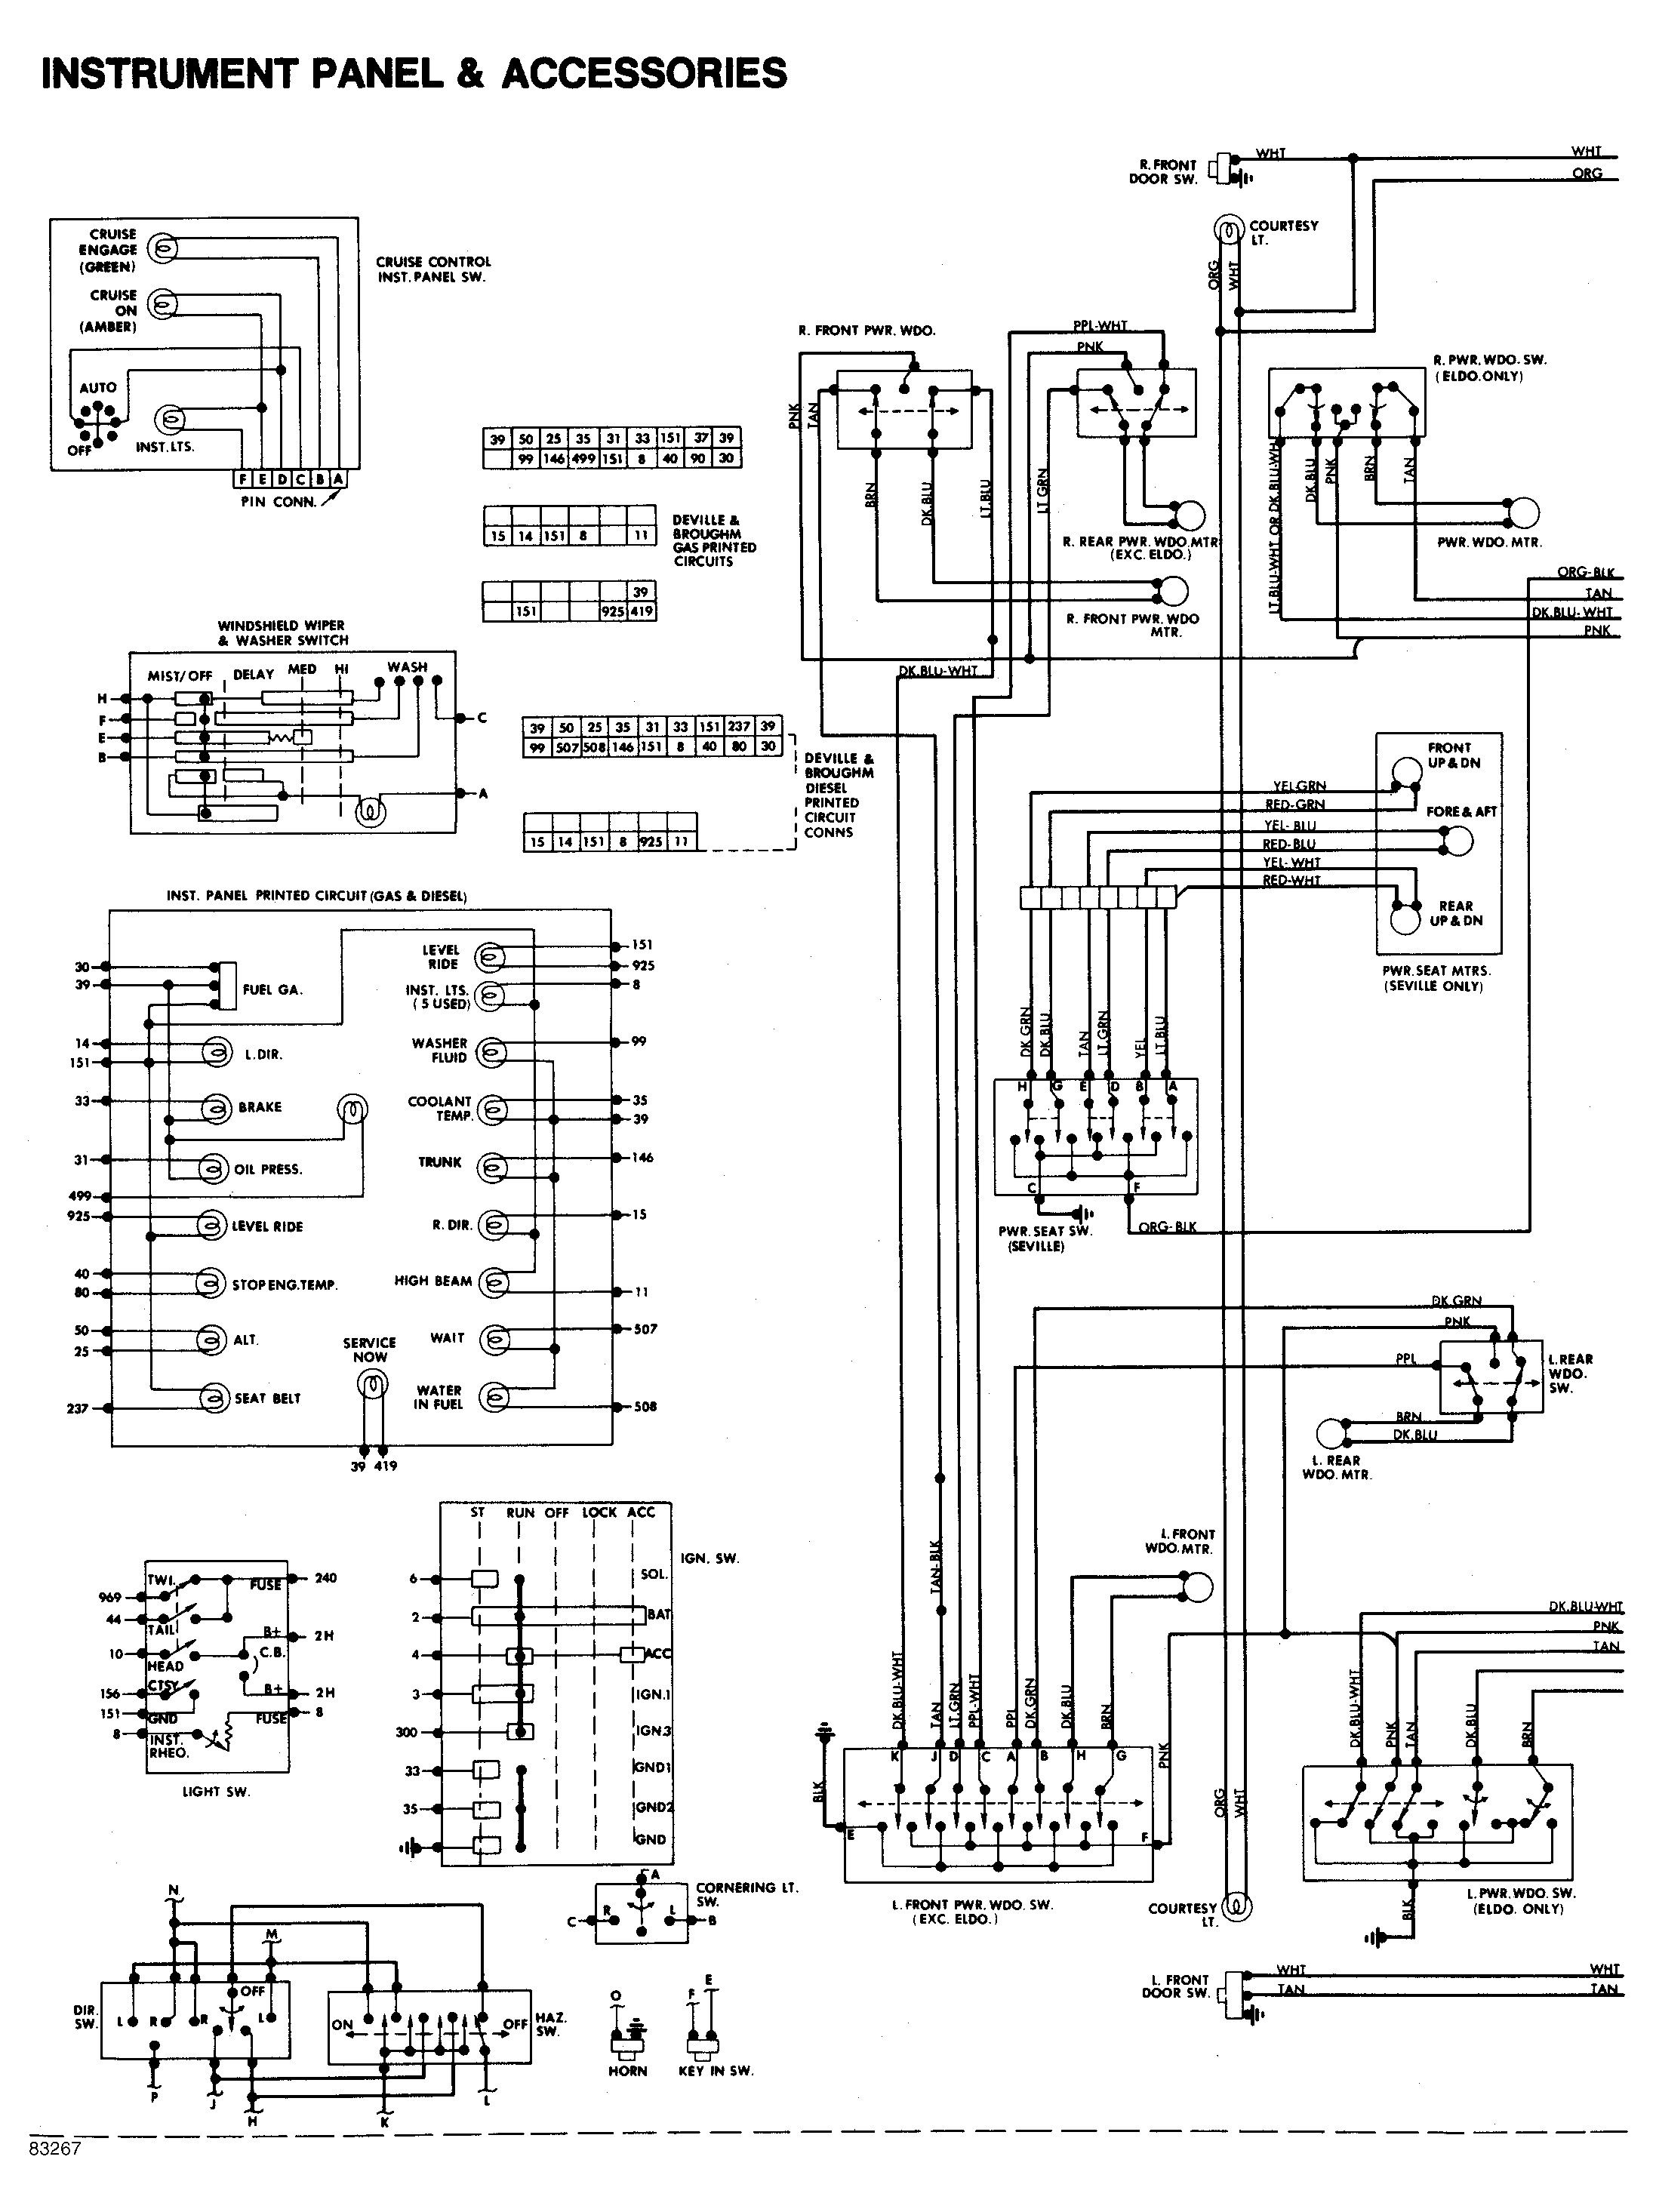 scout wiring harness wiring diagram datasourceinternational scout wiring harness wiring diagram paper scout 80 wiring harness [ 2194 x 2931 Pixel ]